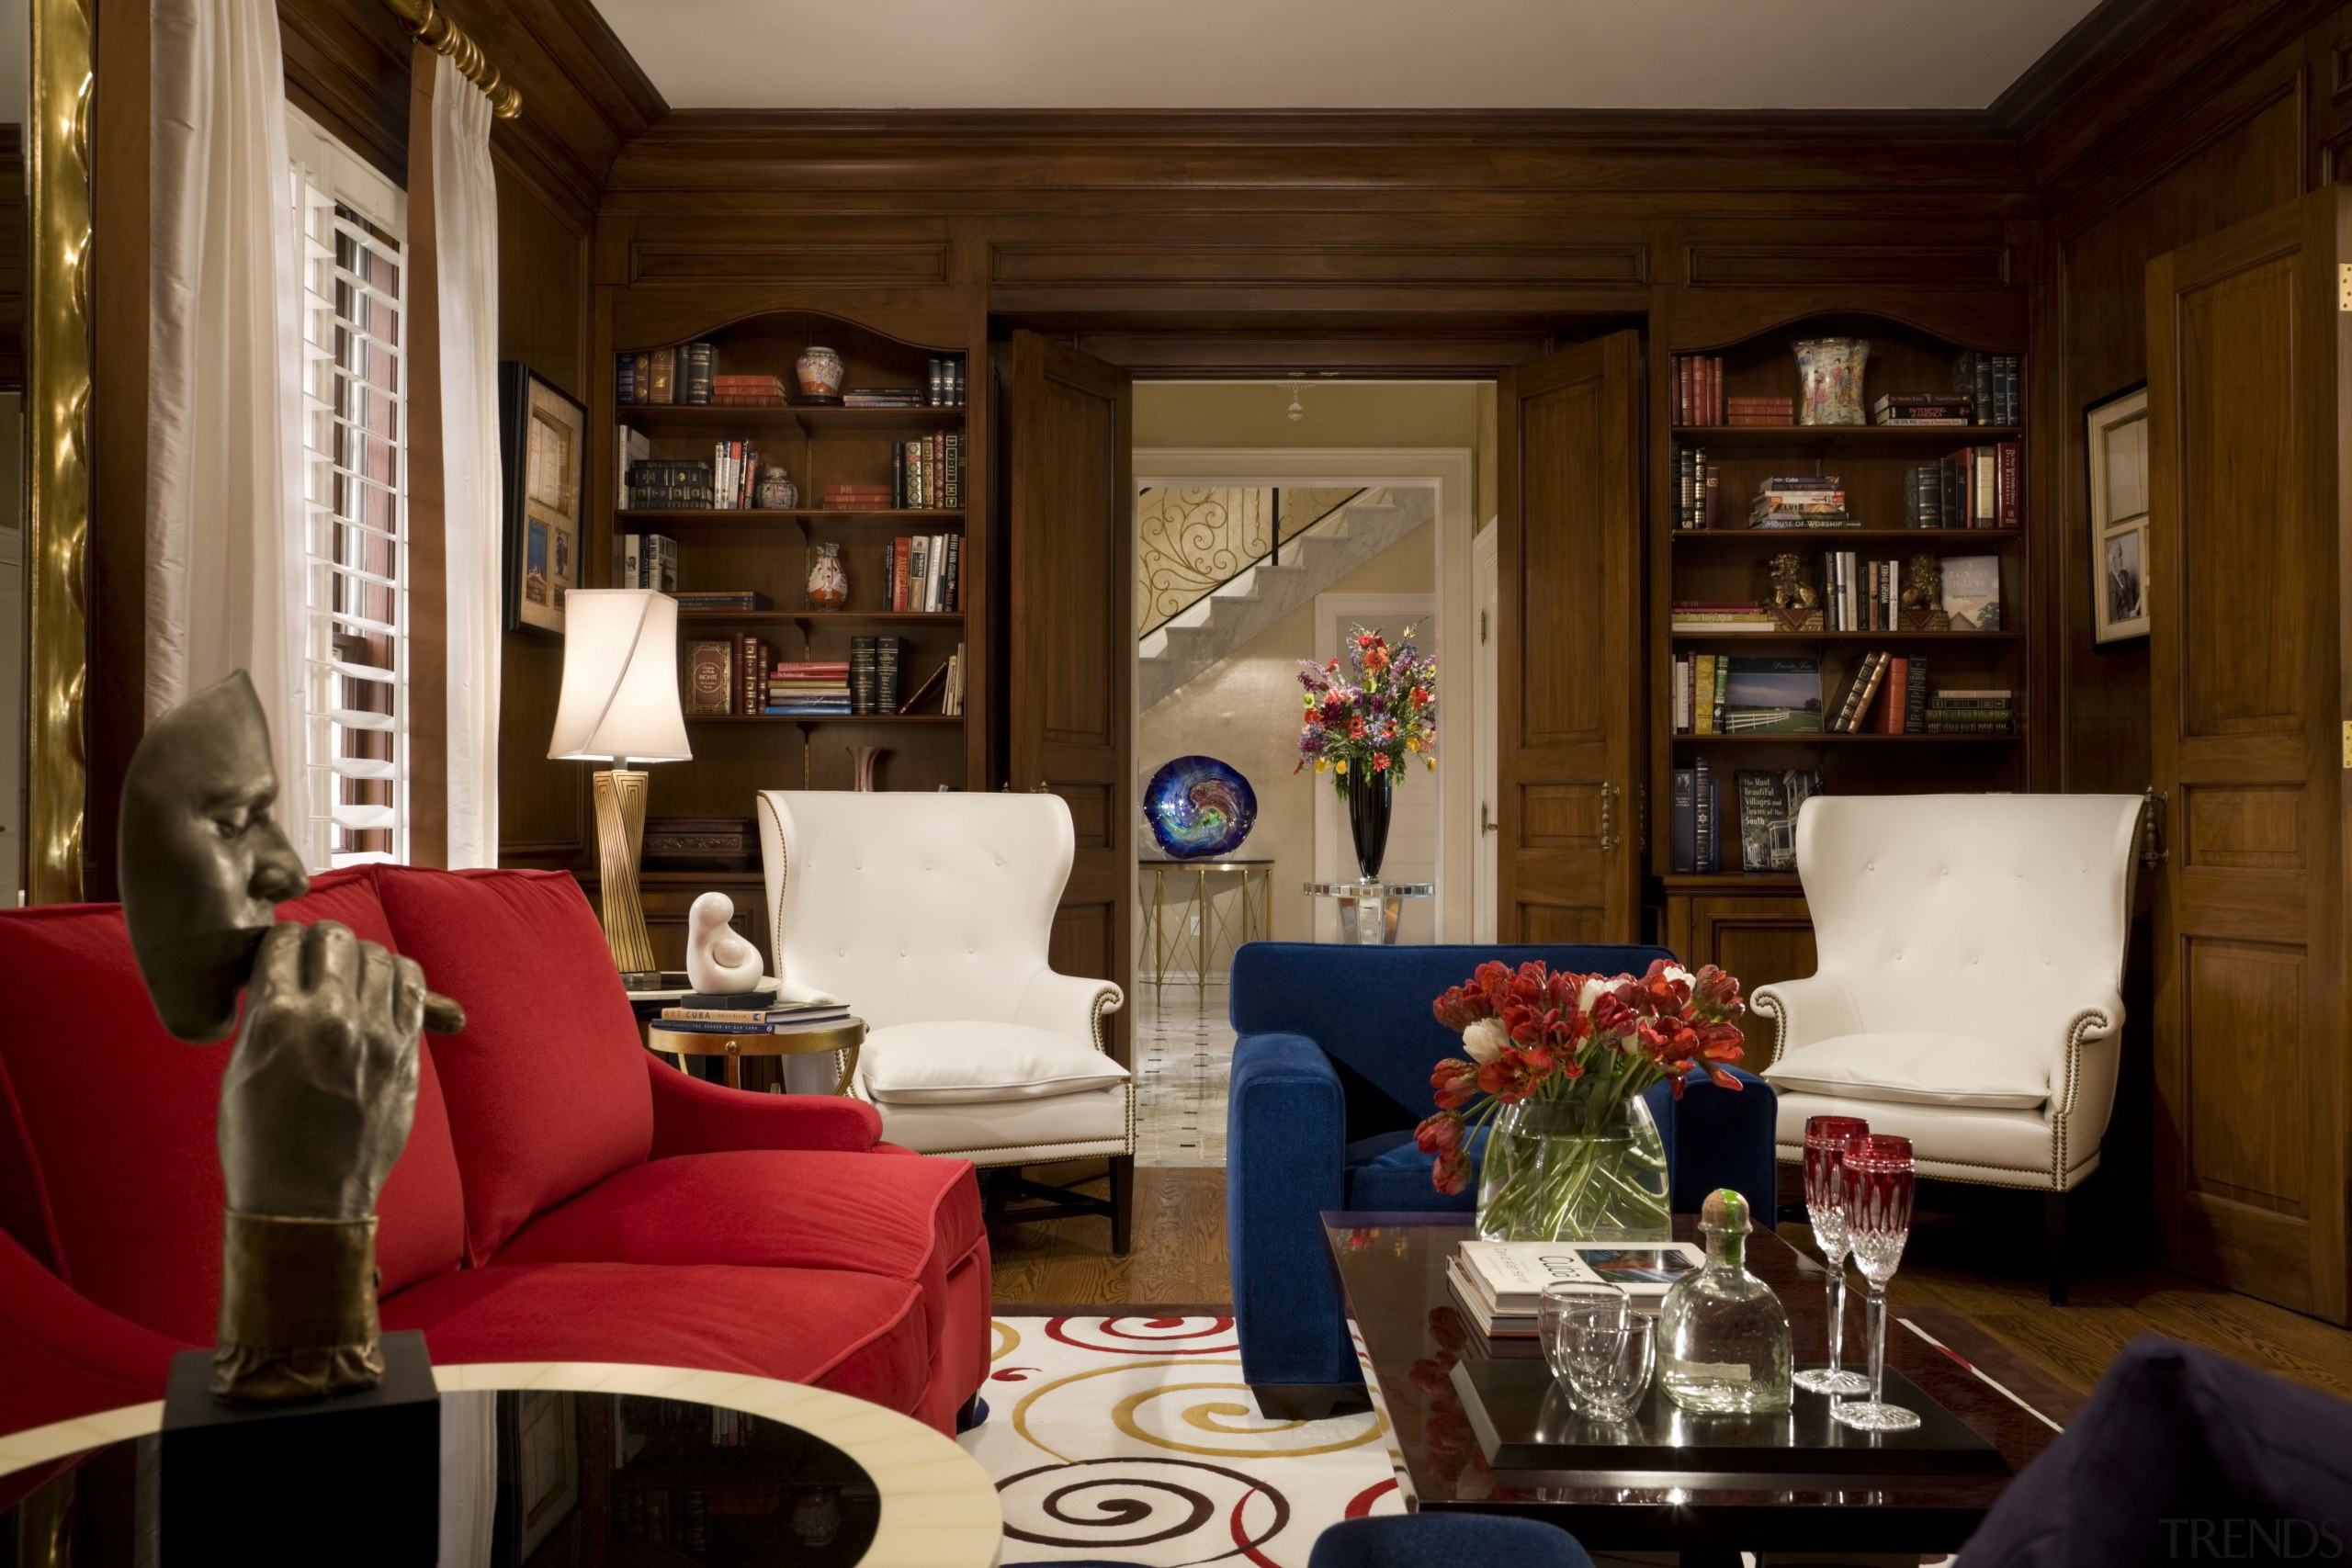 View of living area with furniture - View couch, furniture, home, interior design, living room, room, red, brown